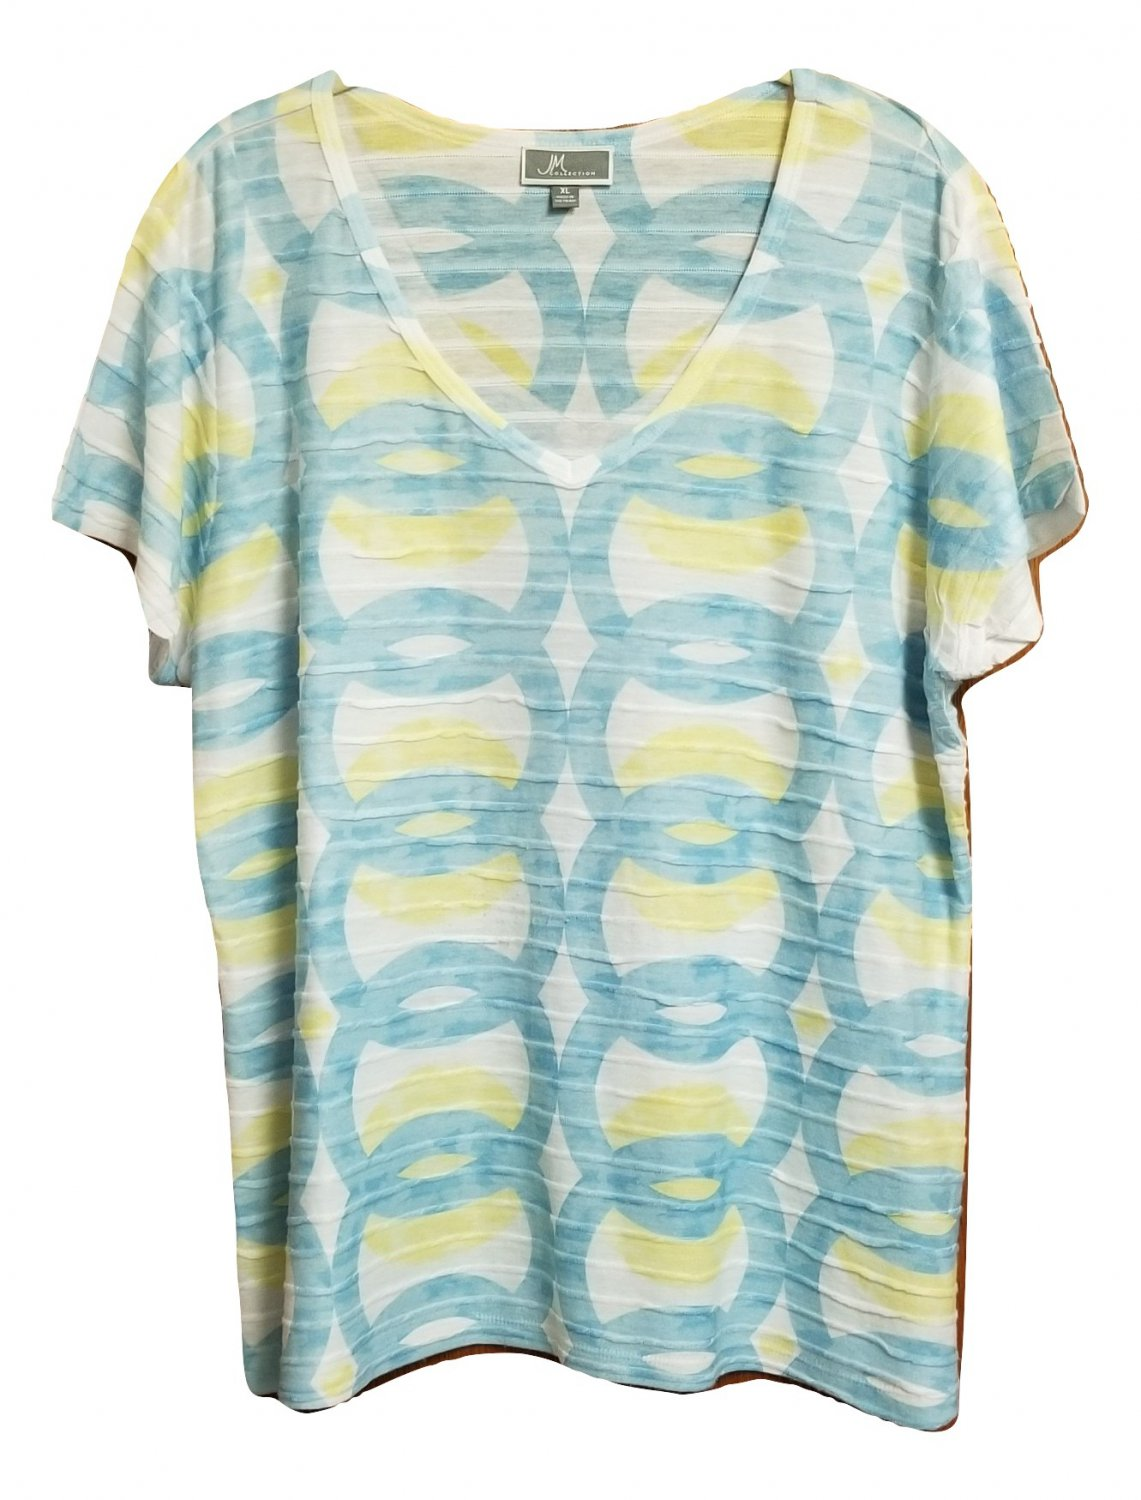 JM Collection Top Womens Size XL Blue Yellow Short Sleeve V-Neck Abstract Print